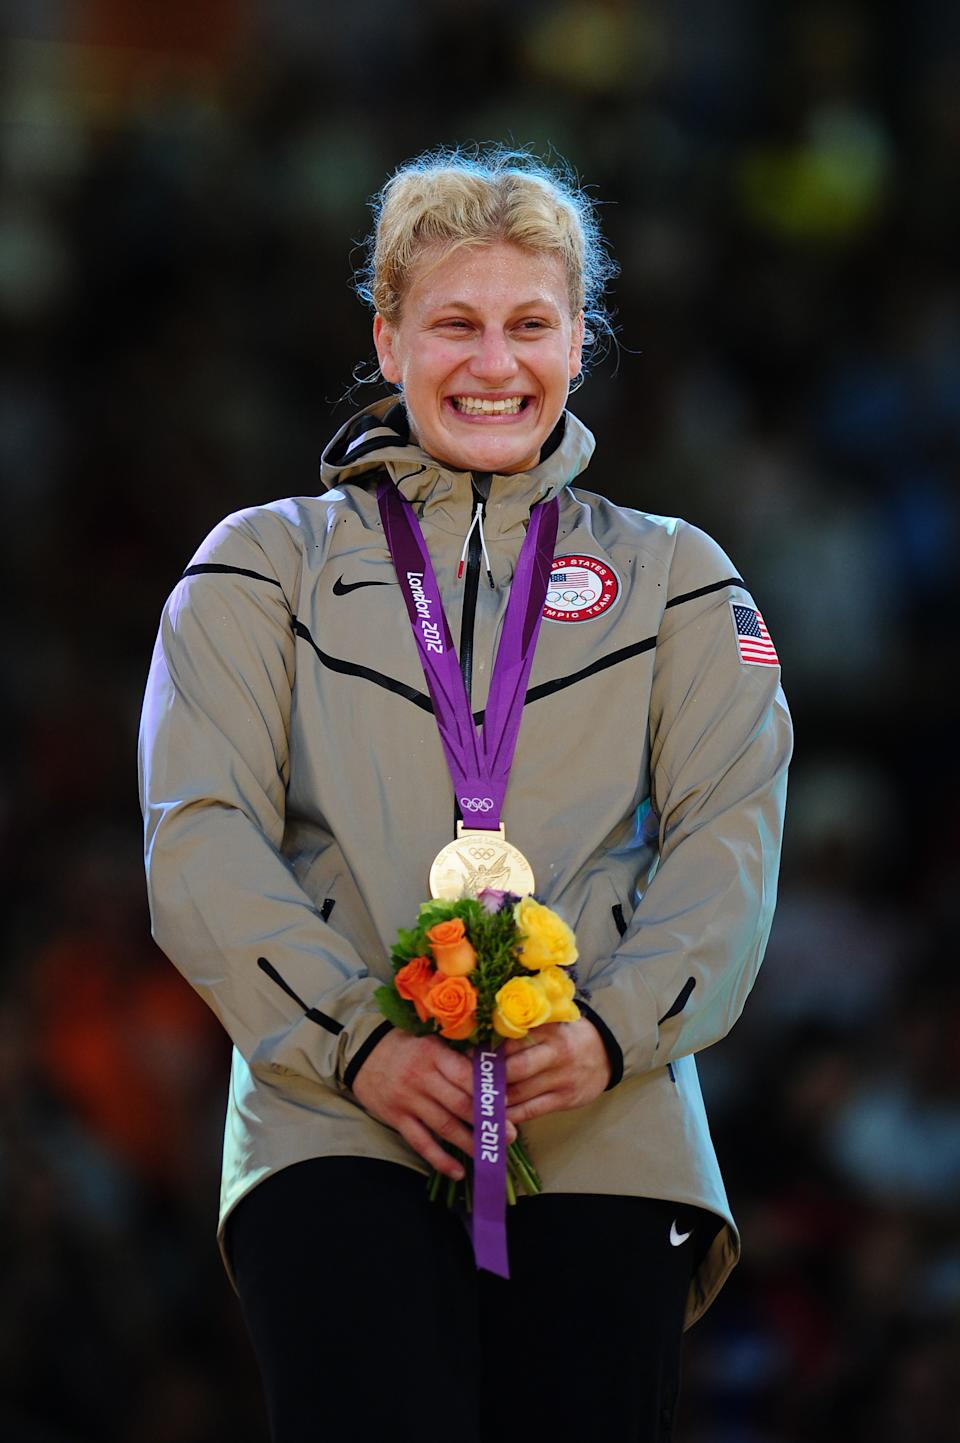 Gold medalist Kayla Harrison of the United States in the Women's -78 kg Judo on Day 6 of the London 2012 Olympic Games at ExCeL on August 2, 2012 in London, England. (Photo by Laurence Griffiths/Getty Images)